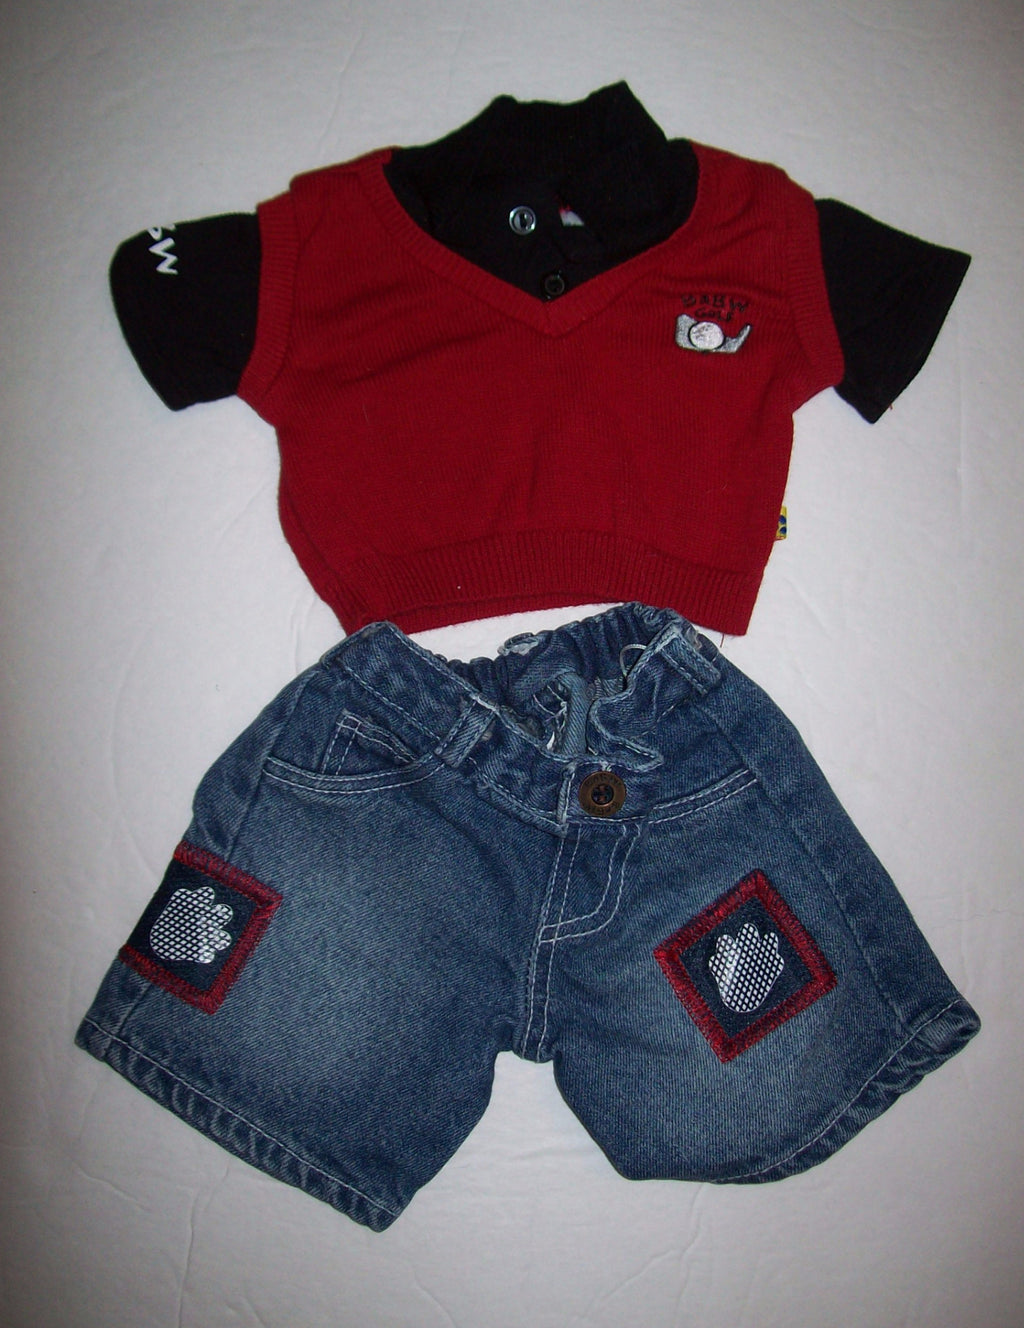 Build A Bear Golf Shirt & Shorts - We Got Character